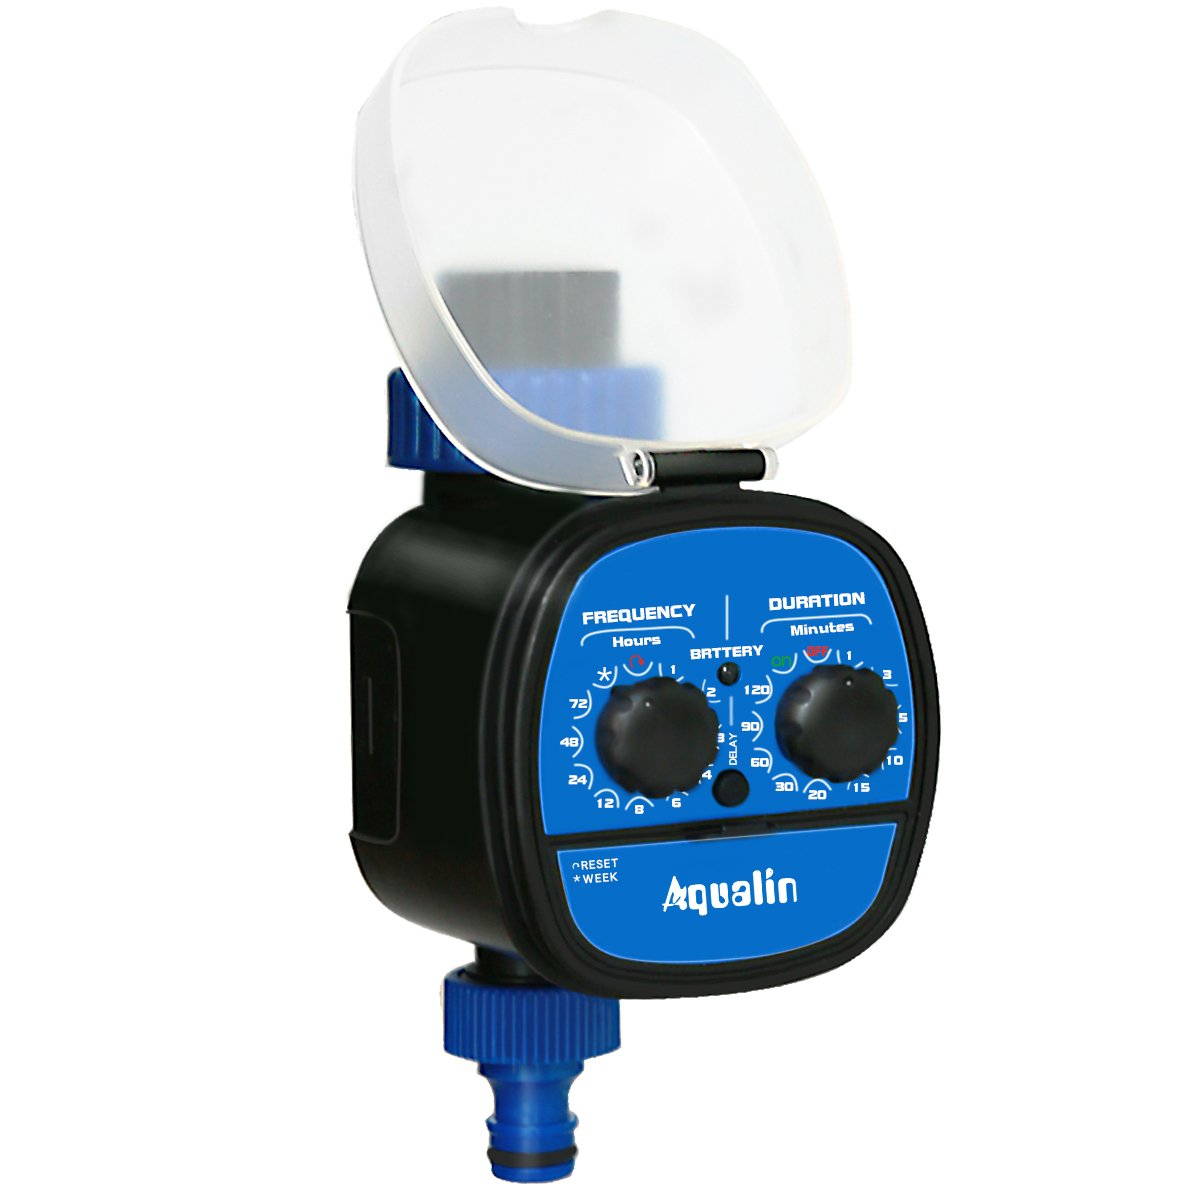 Aqualin Automatic Ball Valve Water Timer Electronic Garden Irrigation System Controller With Delay Function Waterproof